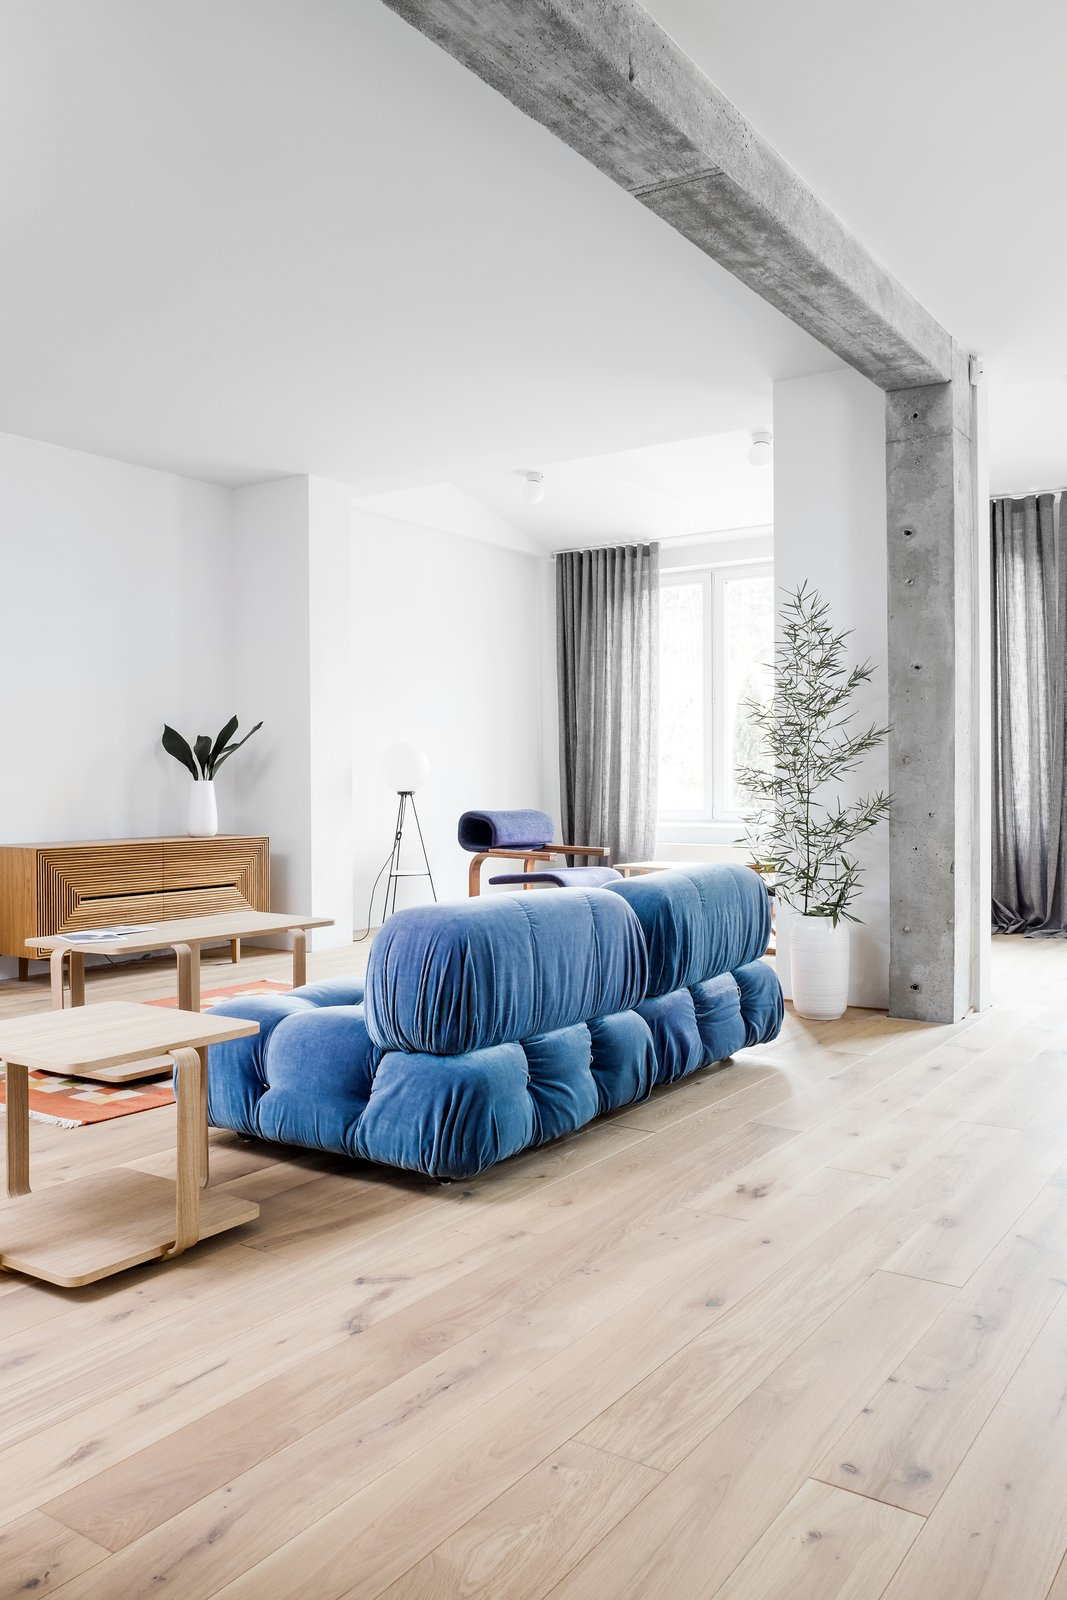 Living Room, Sofa, and Light Hardwood Floor  Photo 11 of 12 in A Family's Loft in Poland Gets a Minimalist Renovation That's Both Elegant and Functional